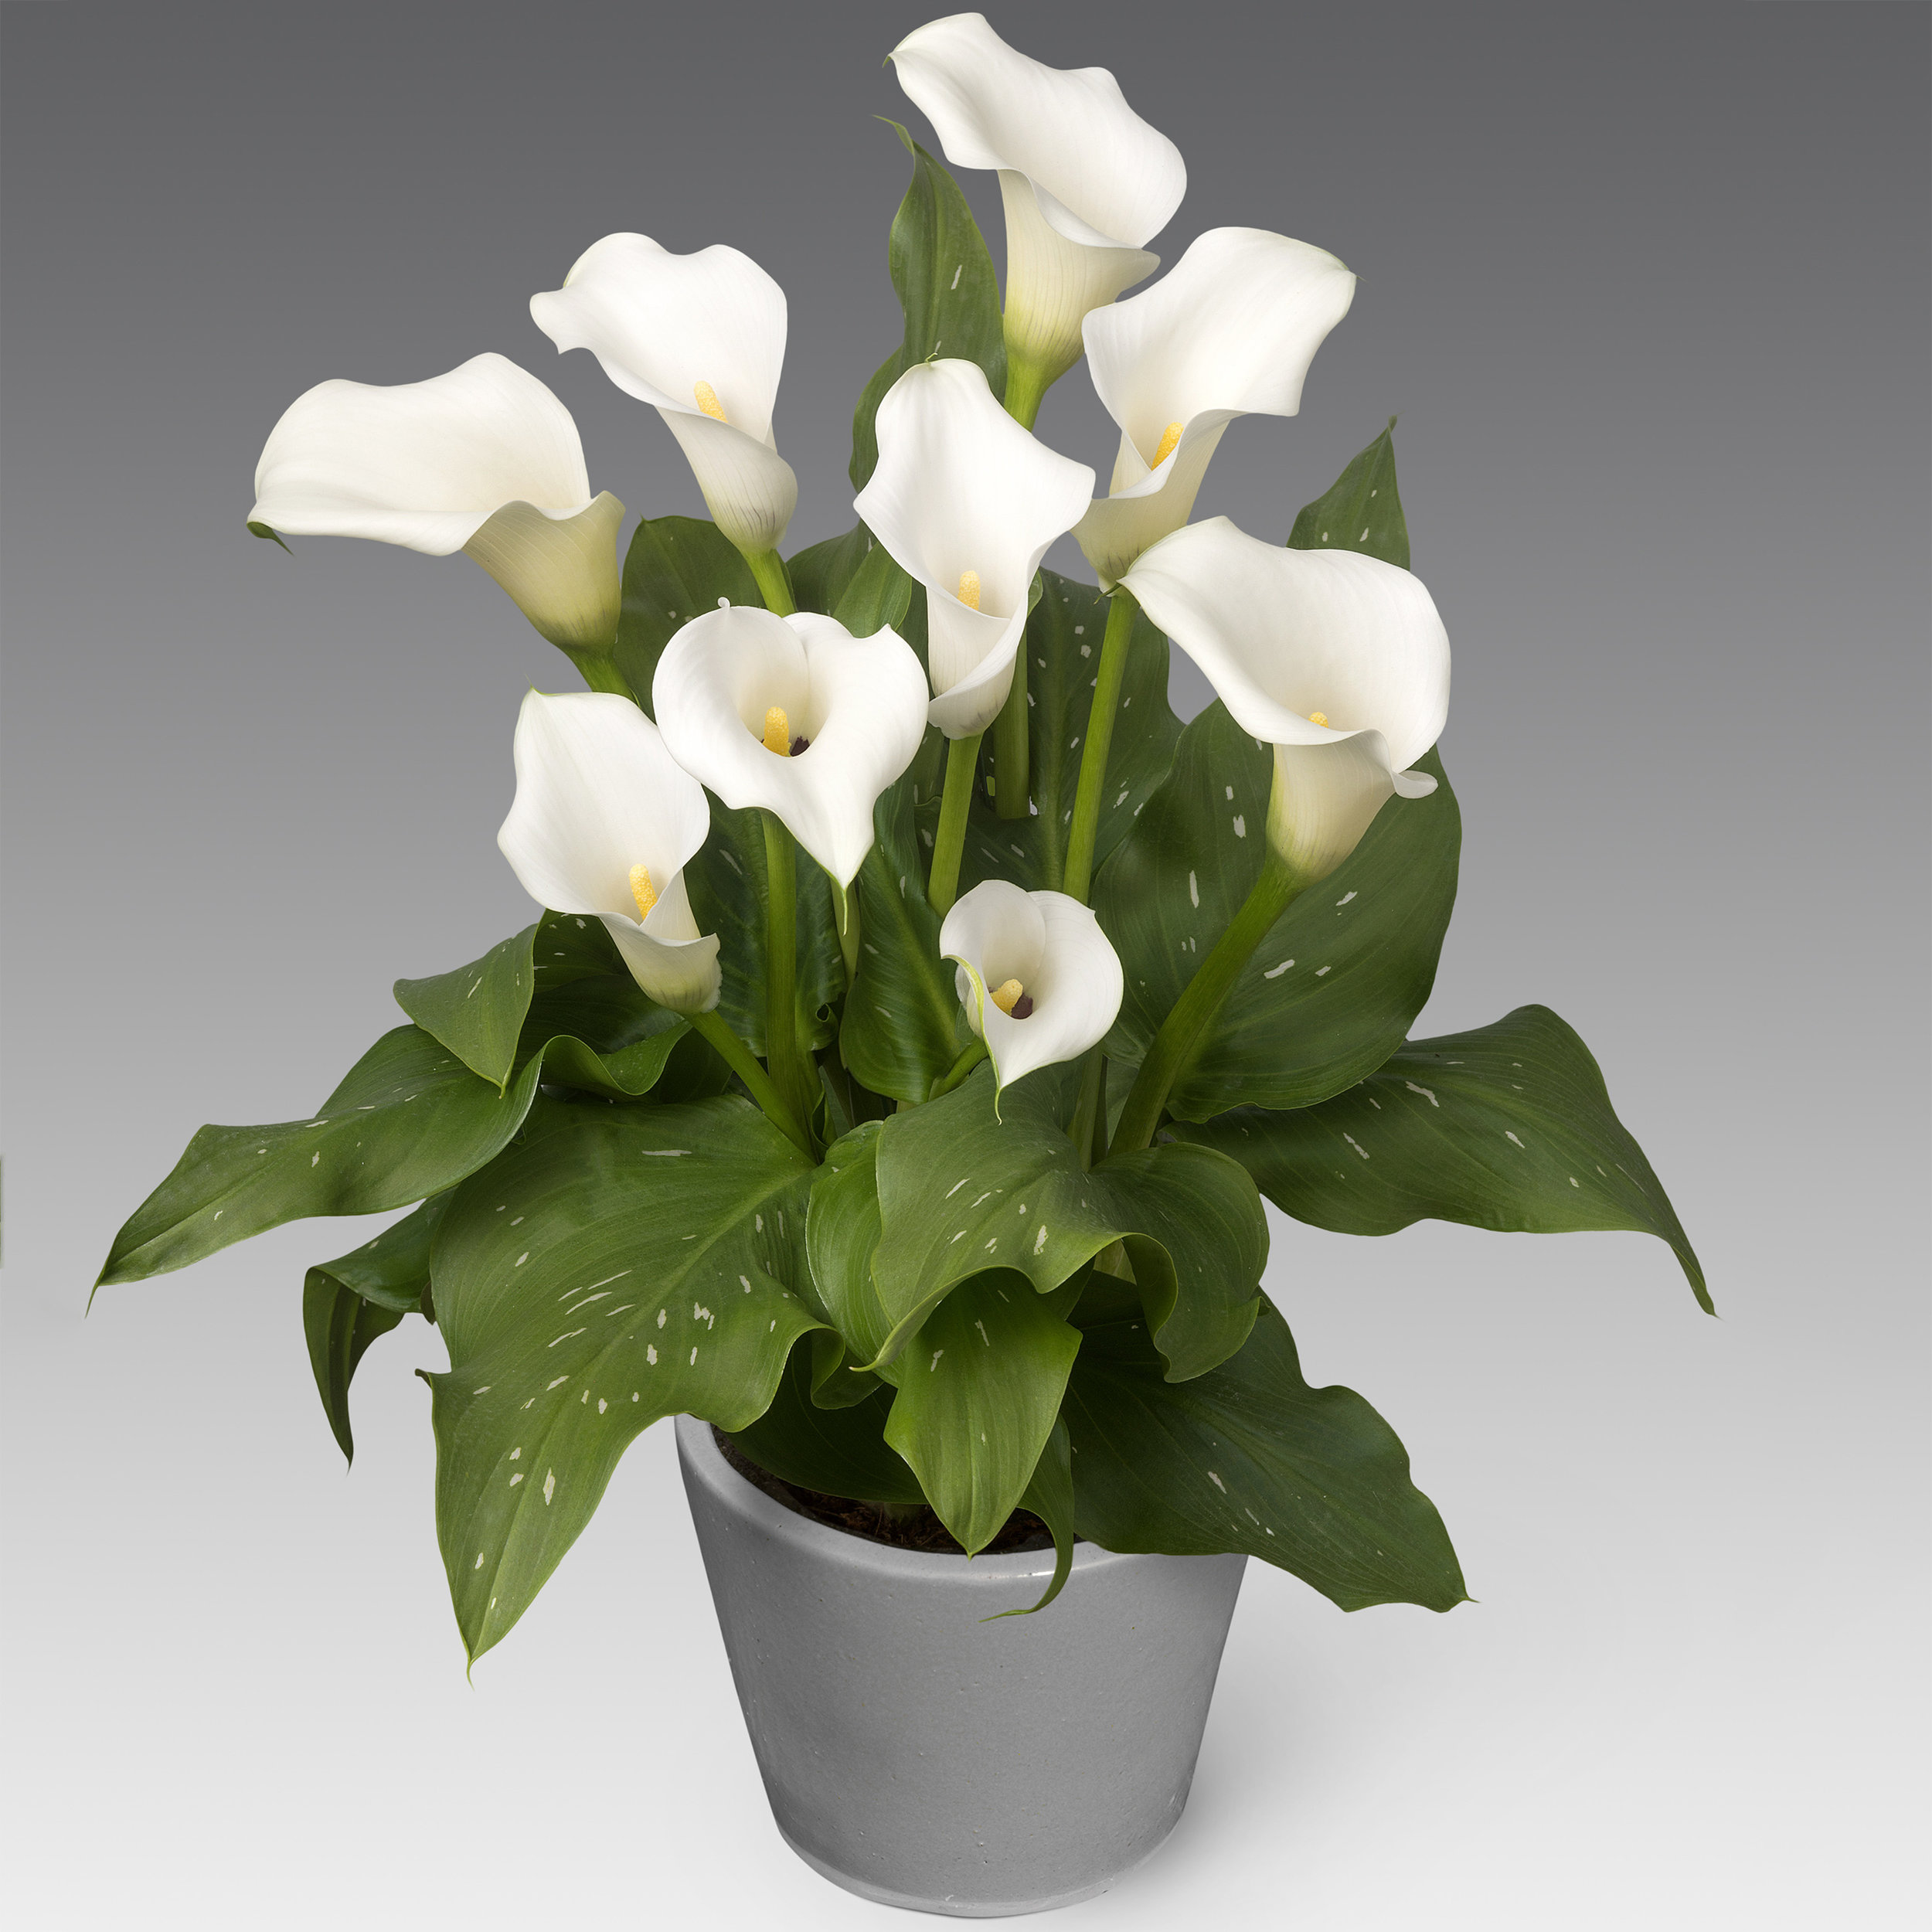 HR_Zantedeschia_Captain_Kelso_03696a.jpg